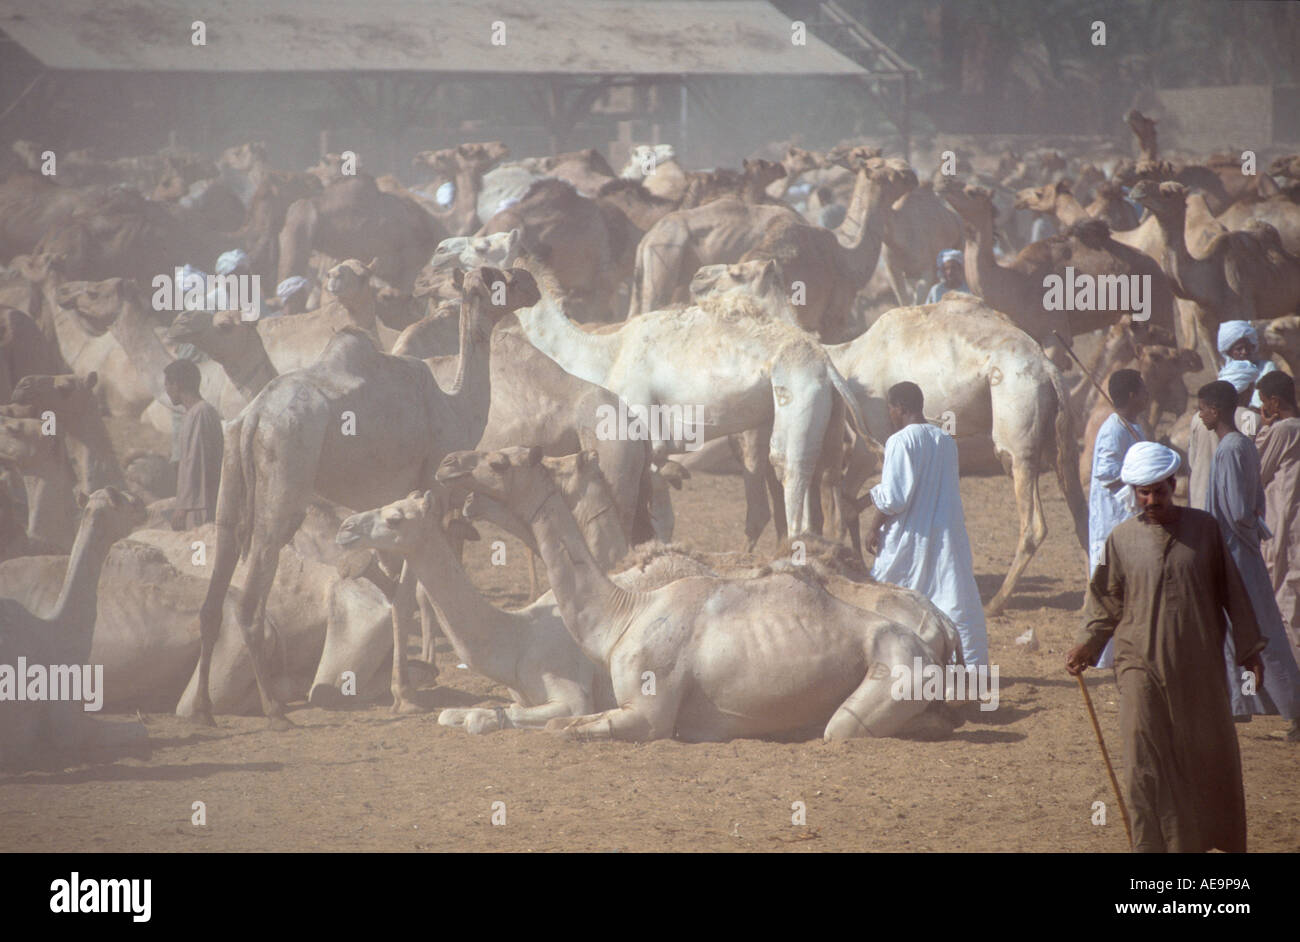 Sea of camels in the dust of Darow camel market, near Kom Ombo, Aswan, Egypt - Stock Image